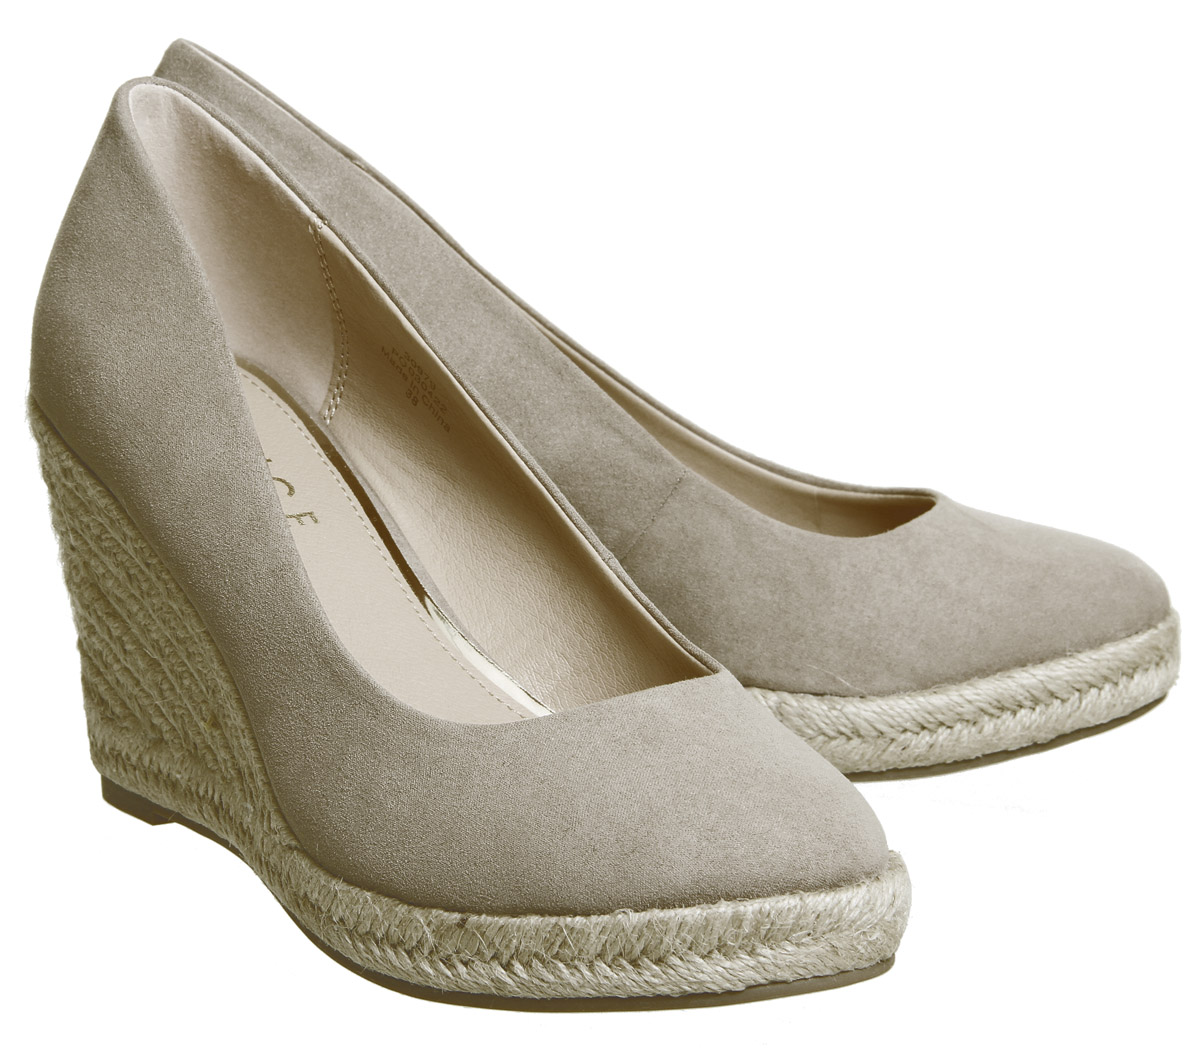 d100a793ace Sentinel Womens Office Marbella Closed Toe Espadrilles Taupe Heels